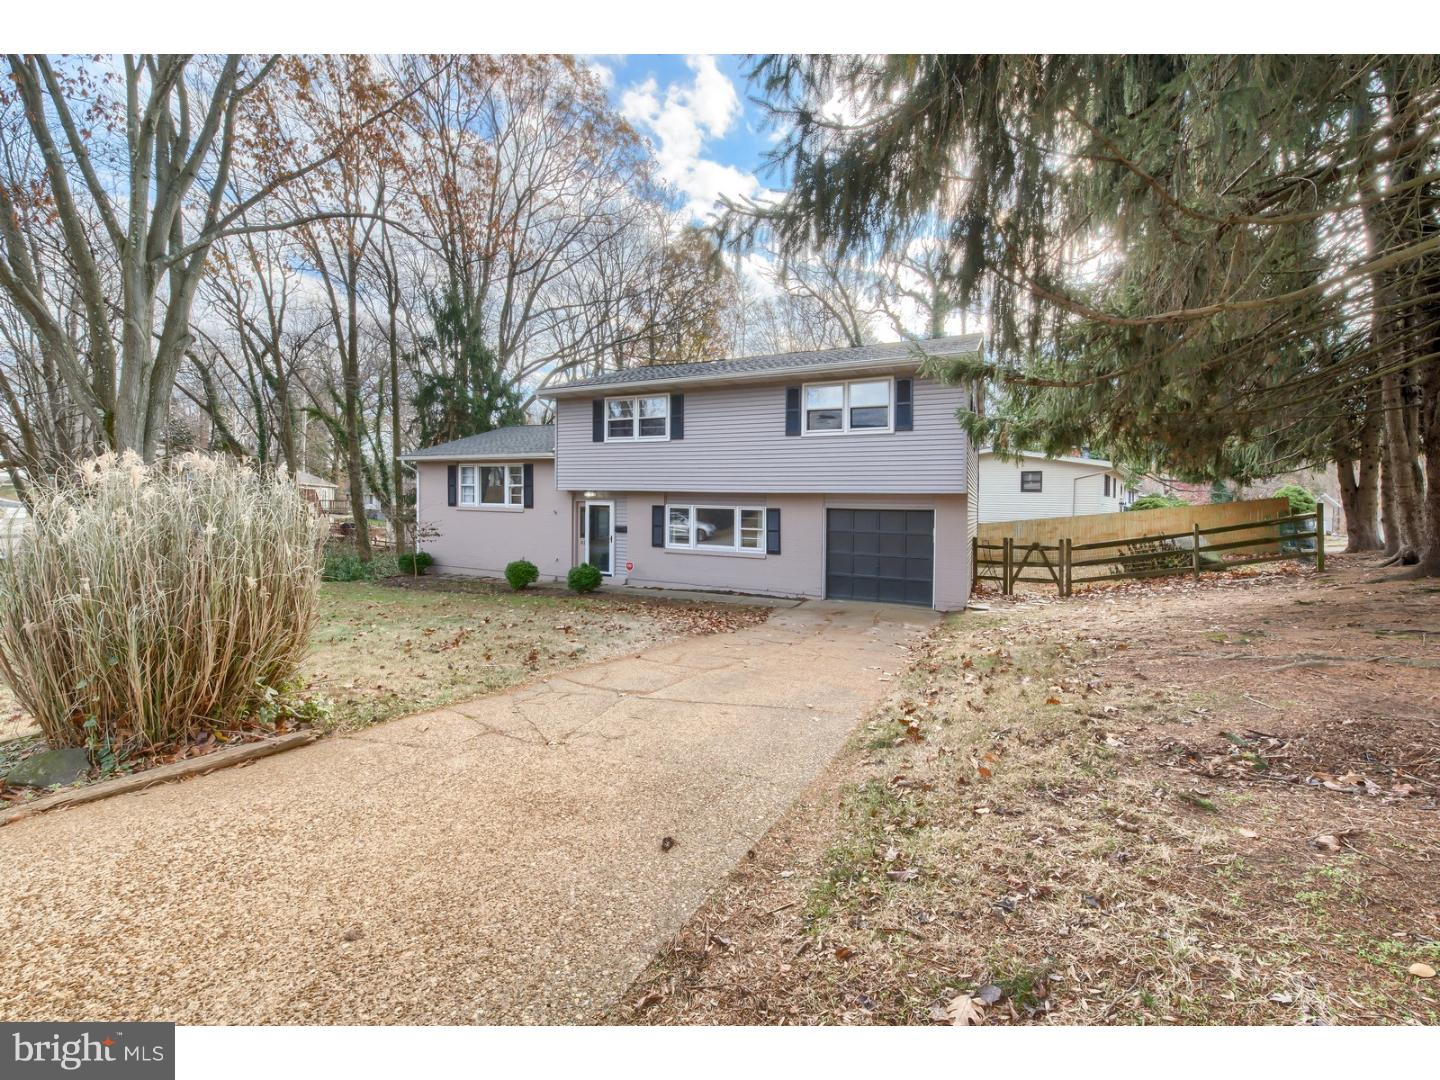 Single Family Home for Sale at 182 HONEYWELL Drive Claymont, Delaware 19703 United States